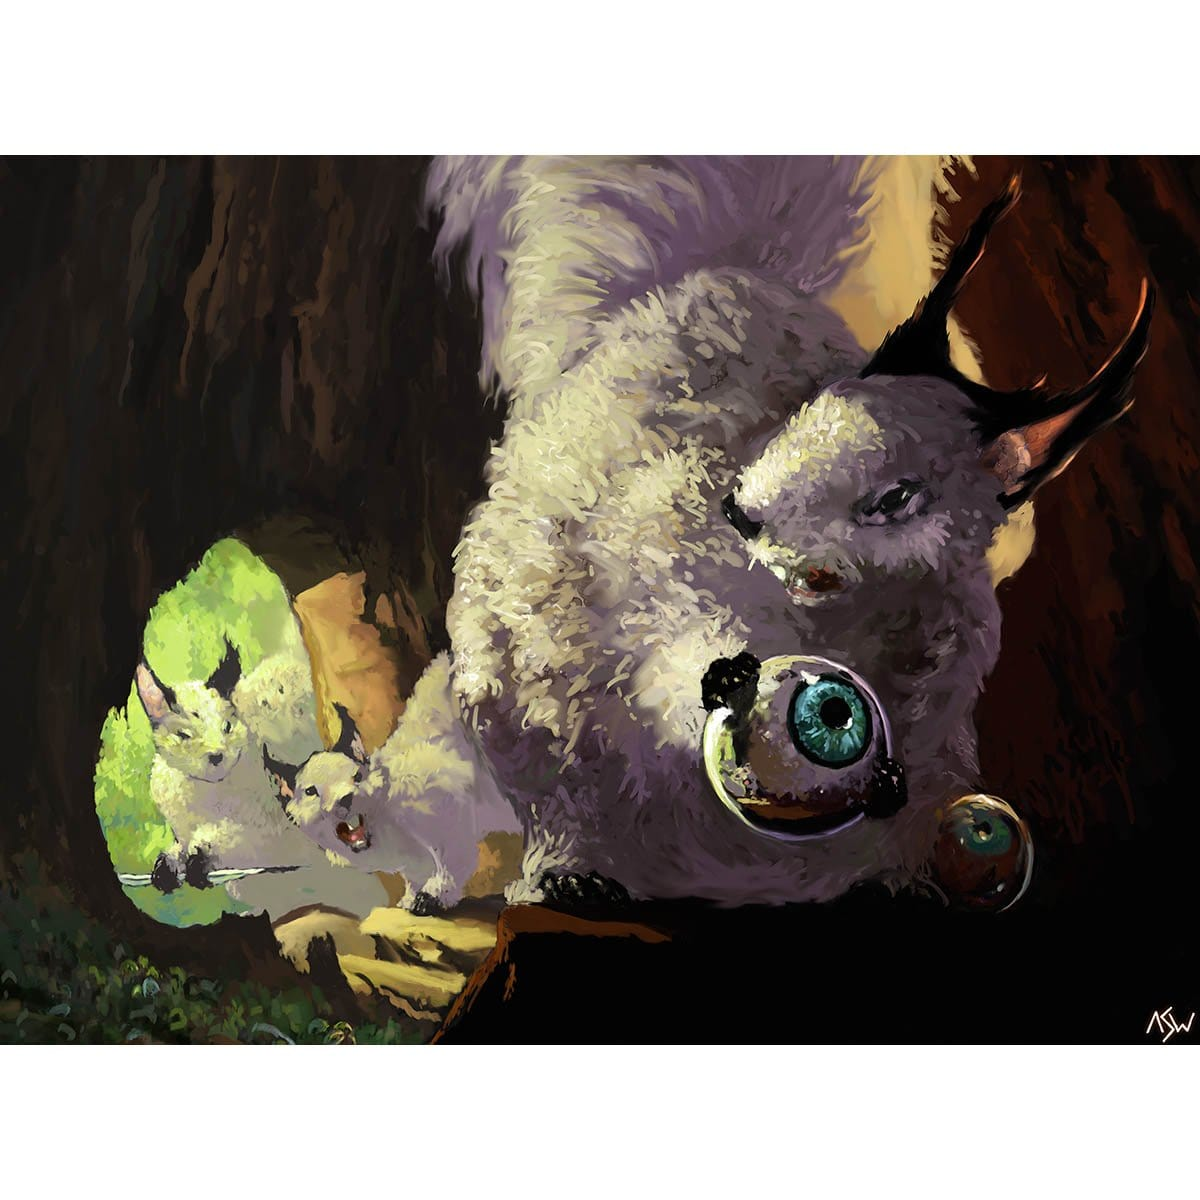 Squirrel's Nest Print - Print - Original Magic Art - Accessories for Magic the Gathering and other card games